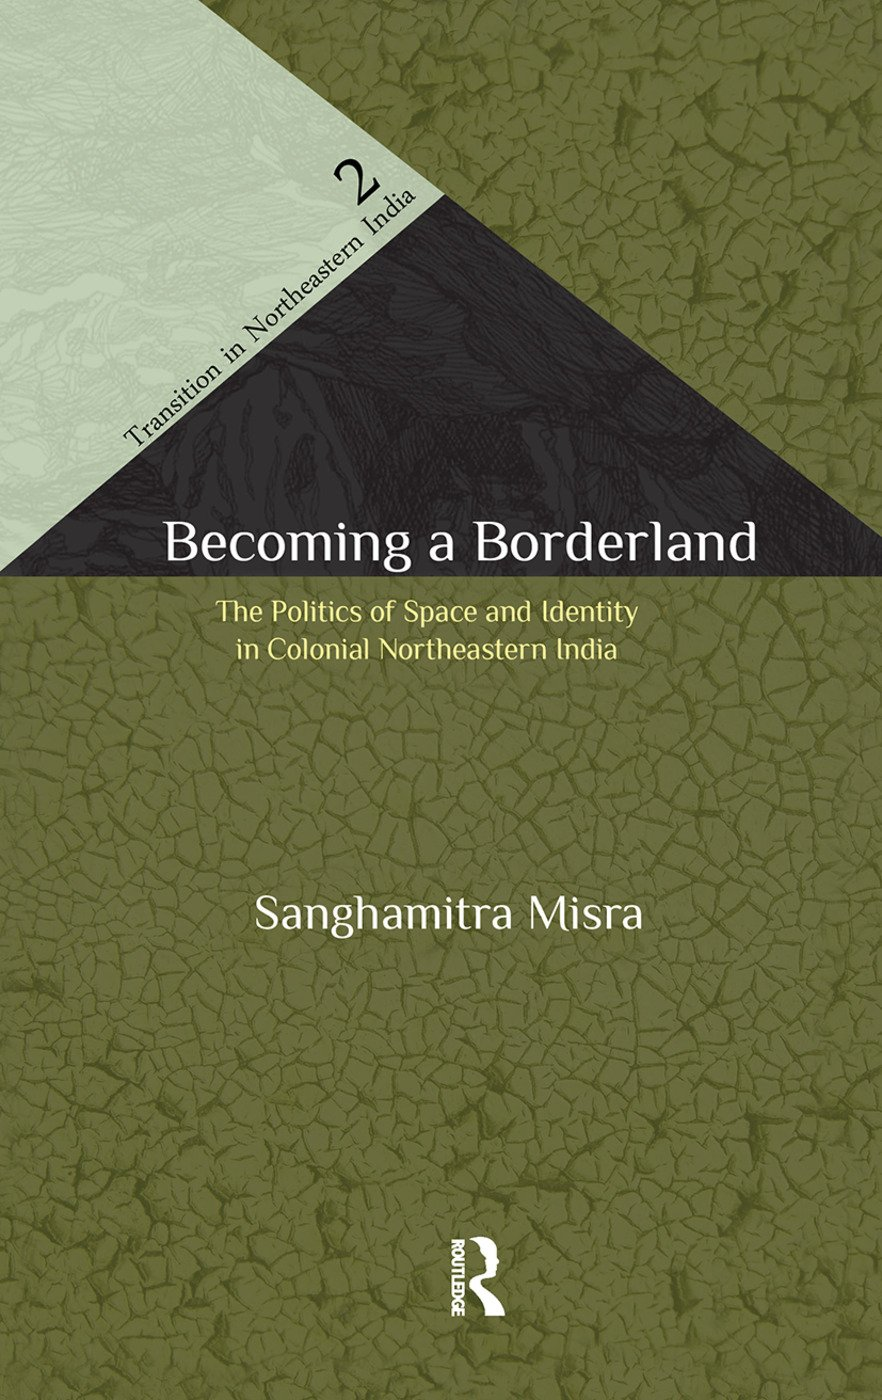 Becoming a Borderland